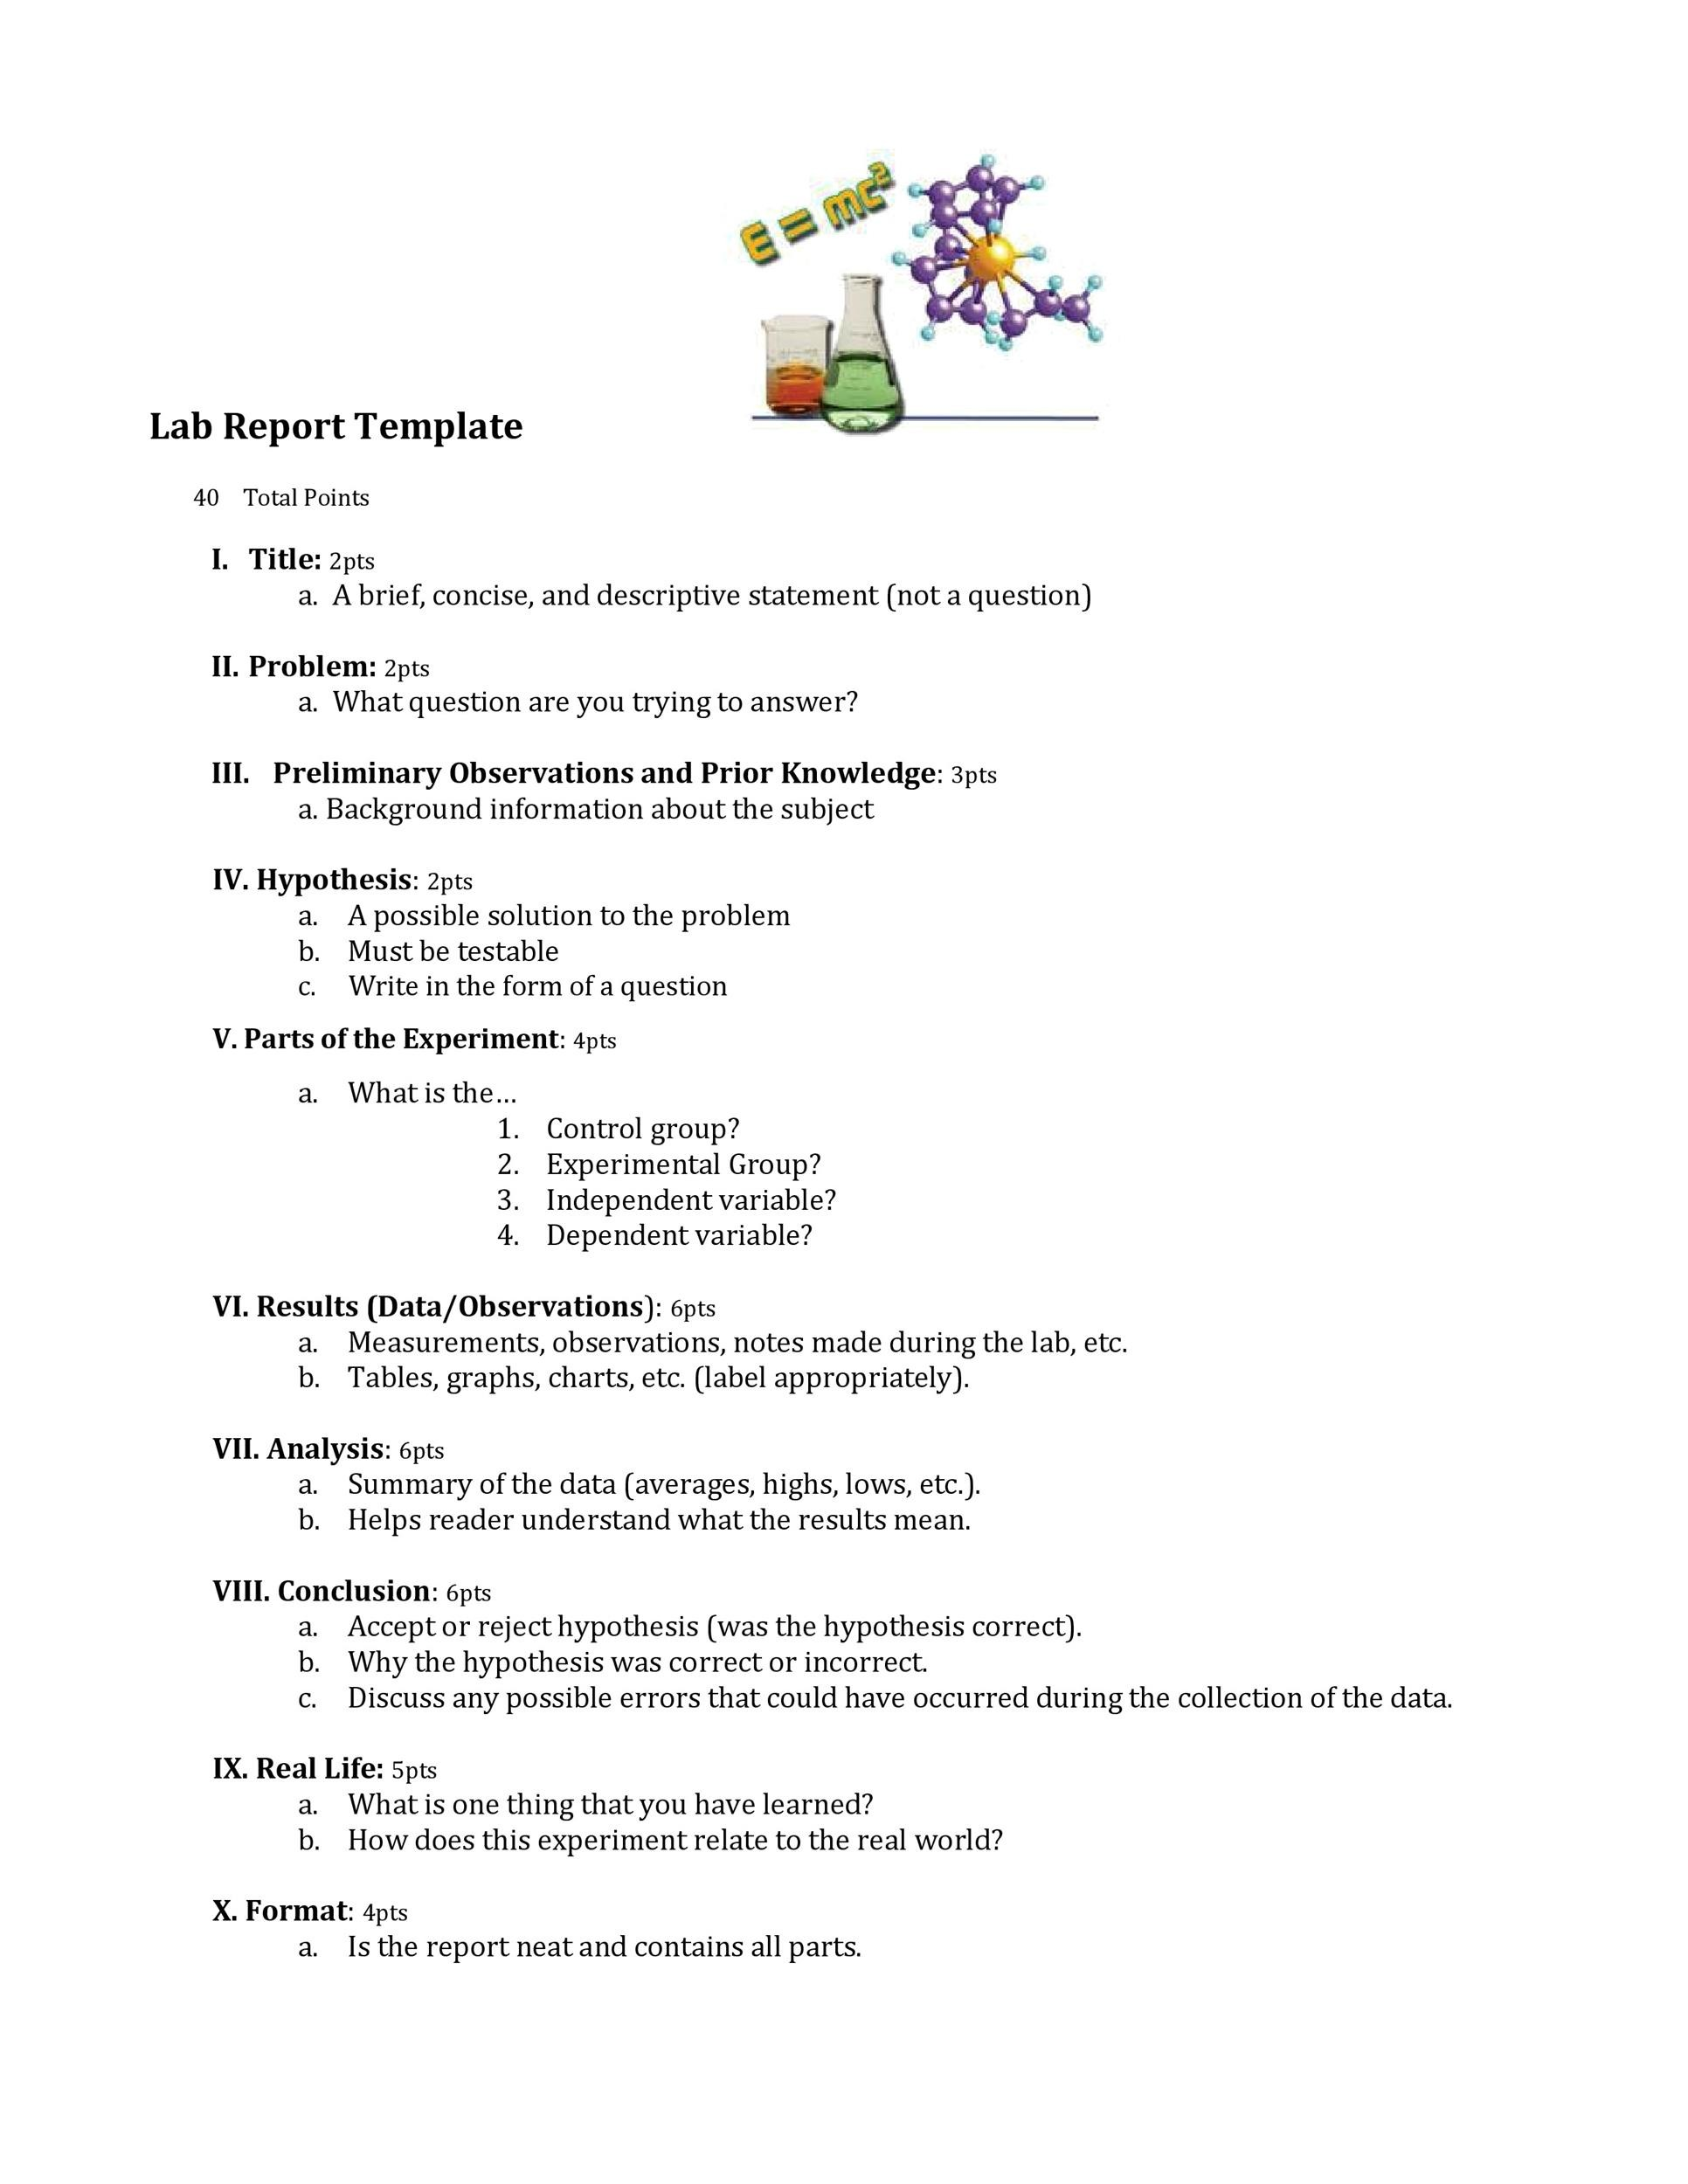 Free lab report template 23